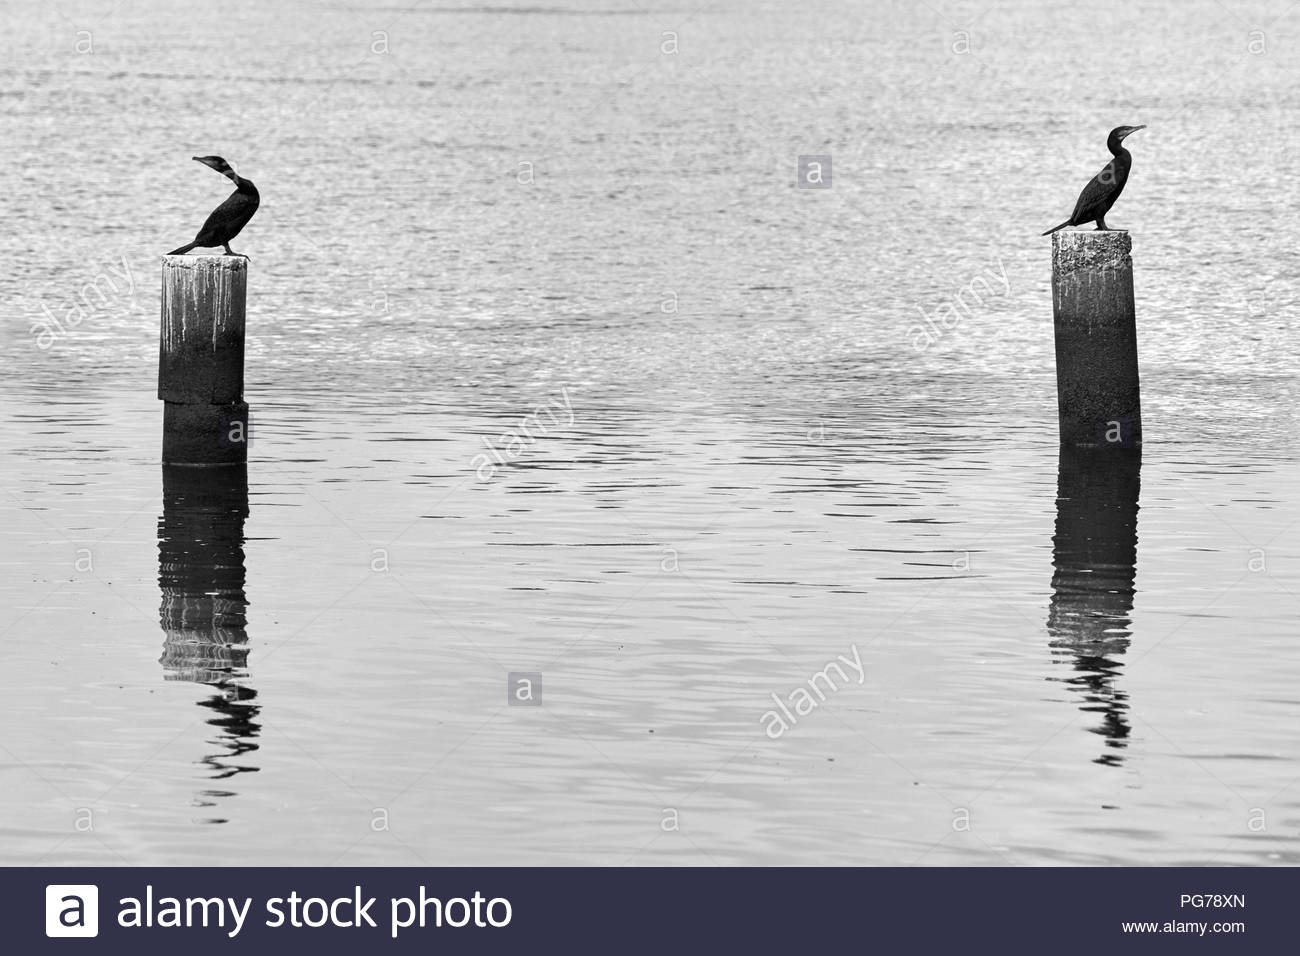 B/W image of Little Black Cormorants(Phalacrocorax sulcirostris), perching atop large wooden posts, in the Clarence River at Lawrence, NSW, Australia. - Stock Image